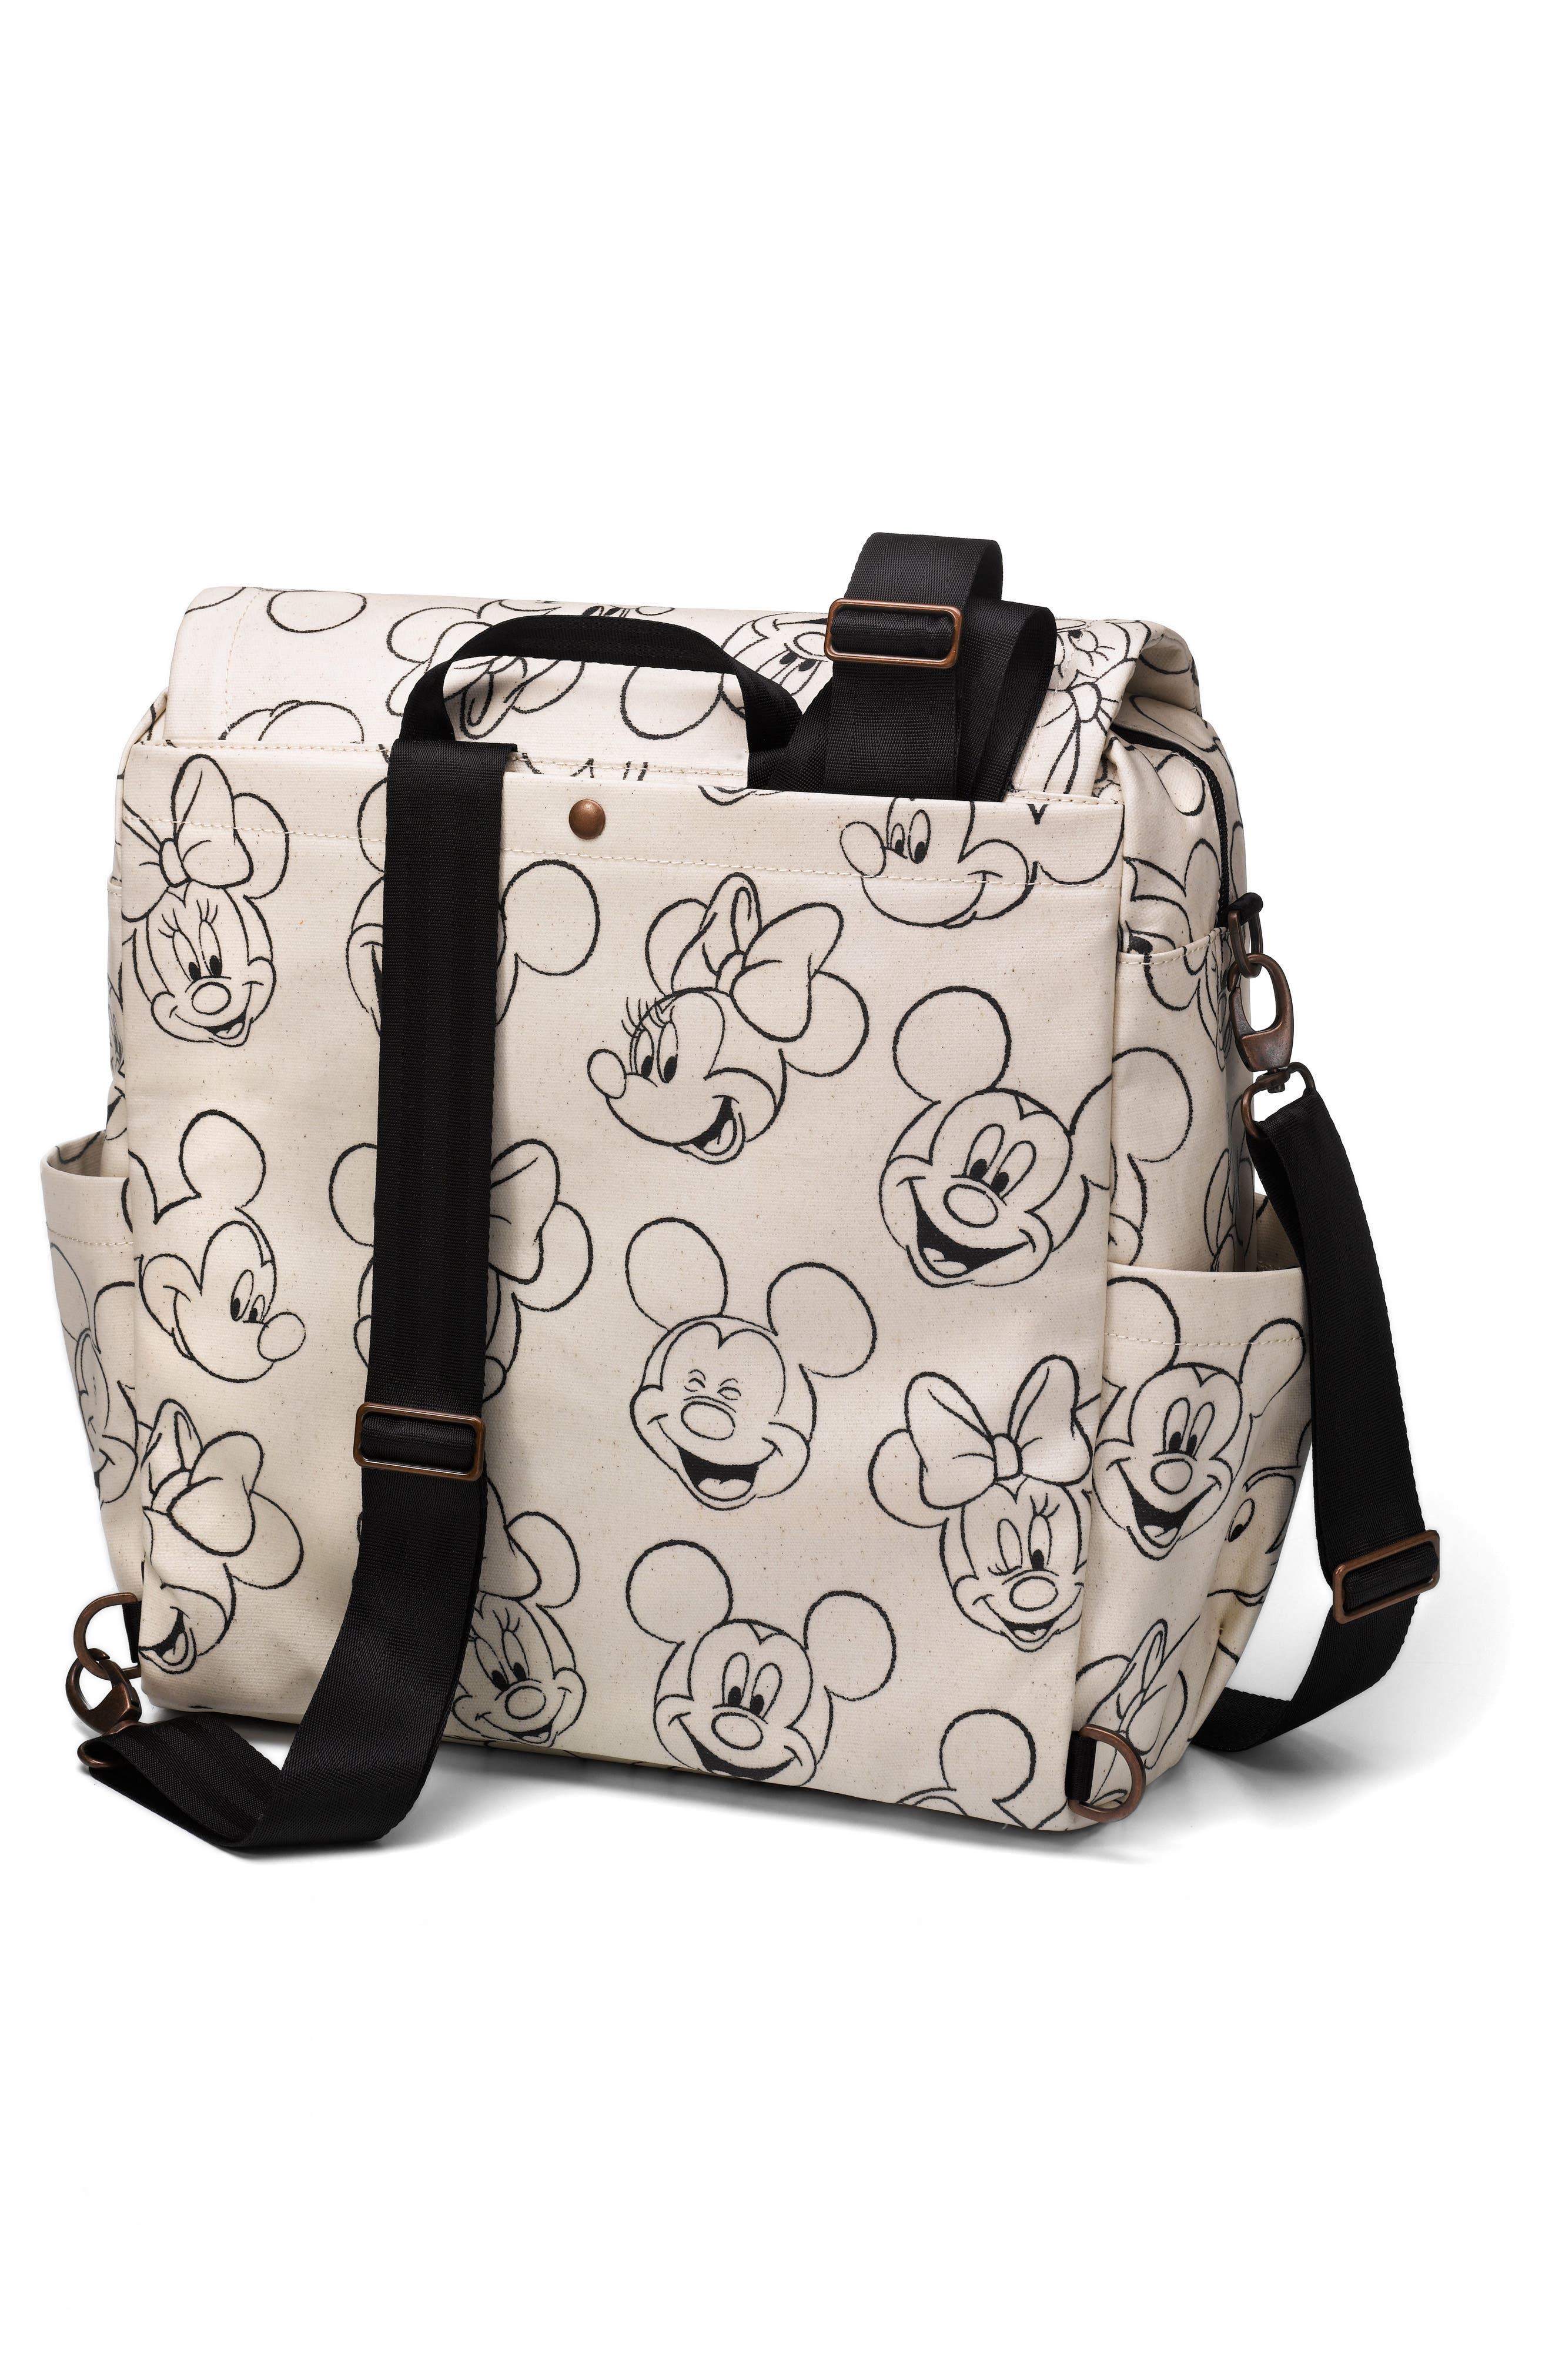 PETUNIA PICKLE BOTTOM, Boxy Backpack - Disney Diaper Bag, Alternate thumbnail 2, color, SKETCHBOOK MICKEY AND MINNIE